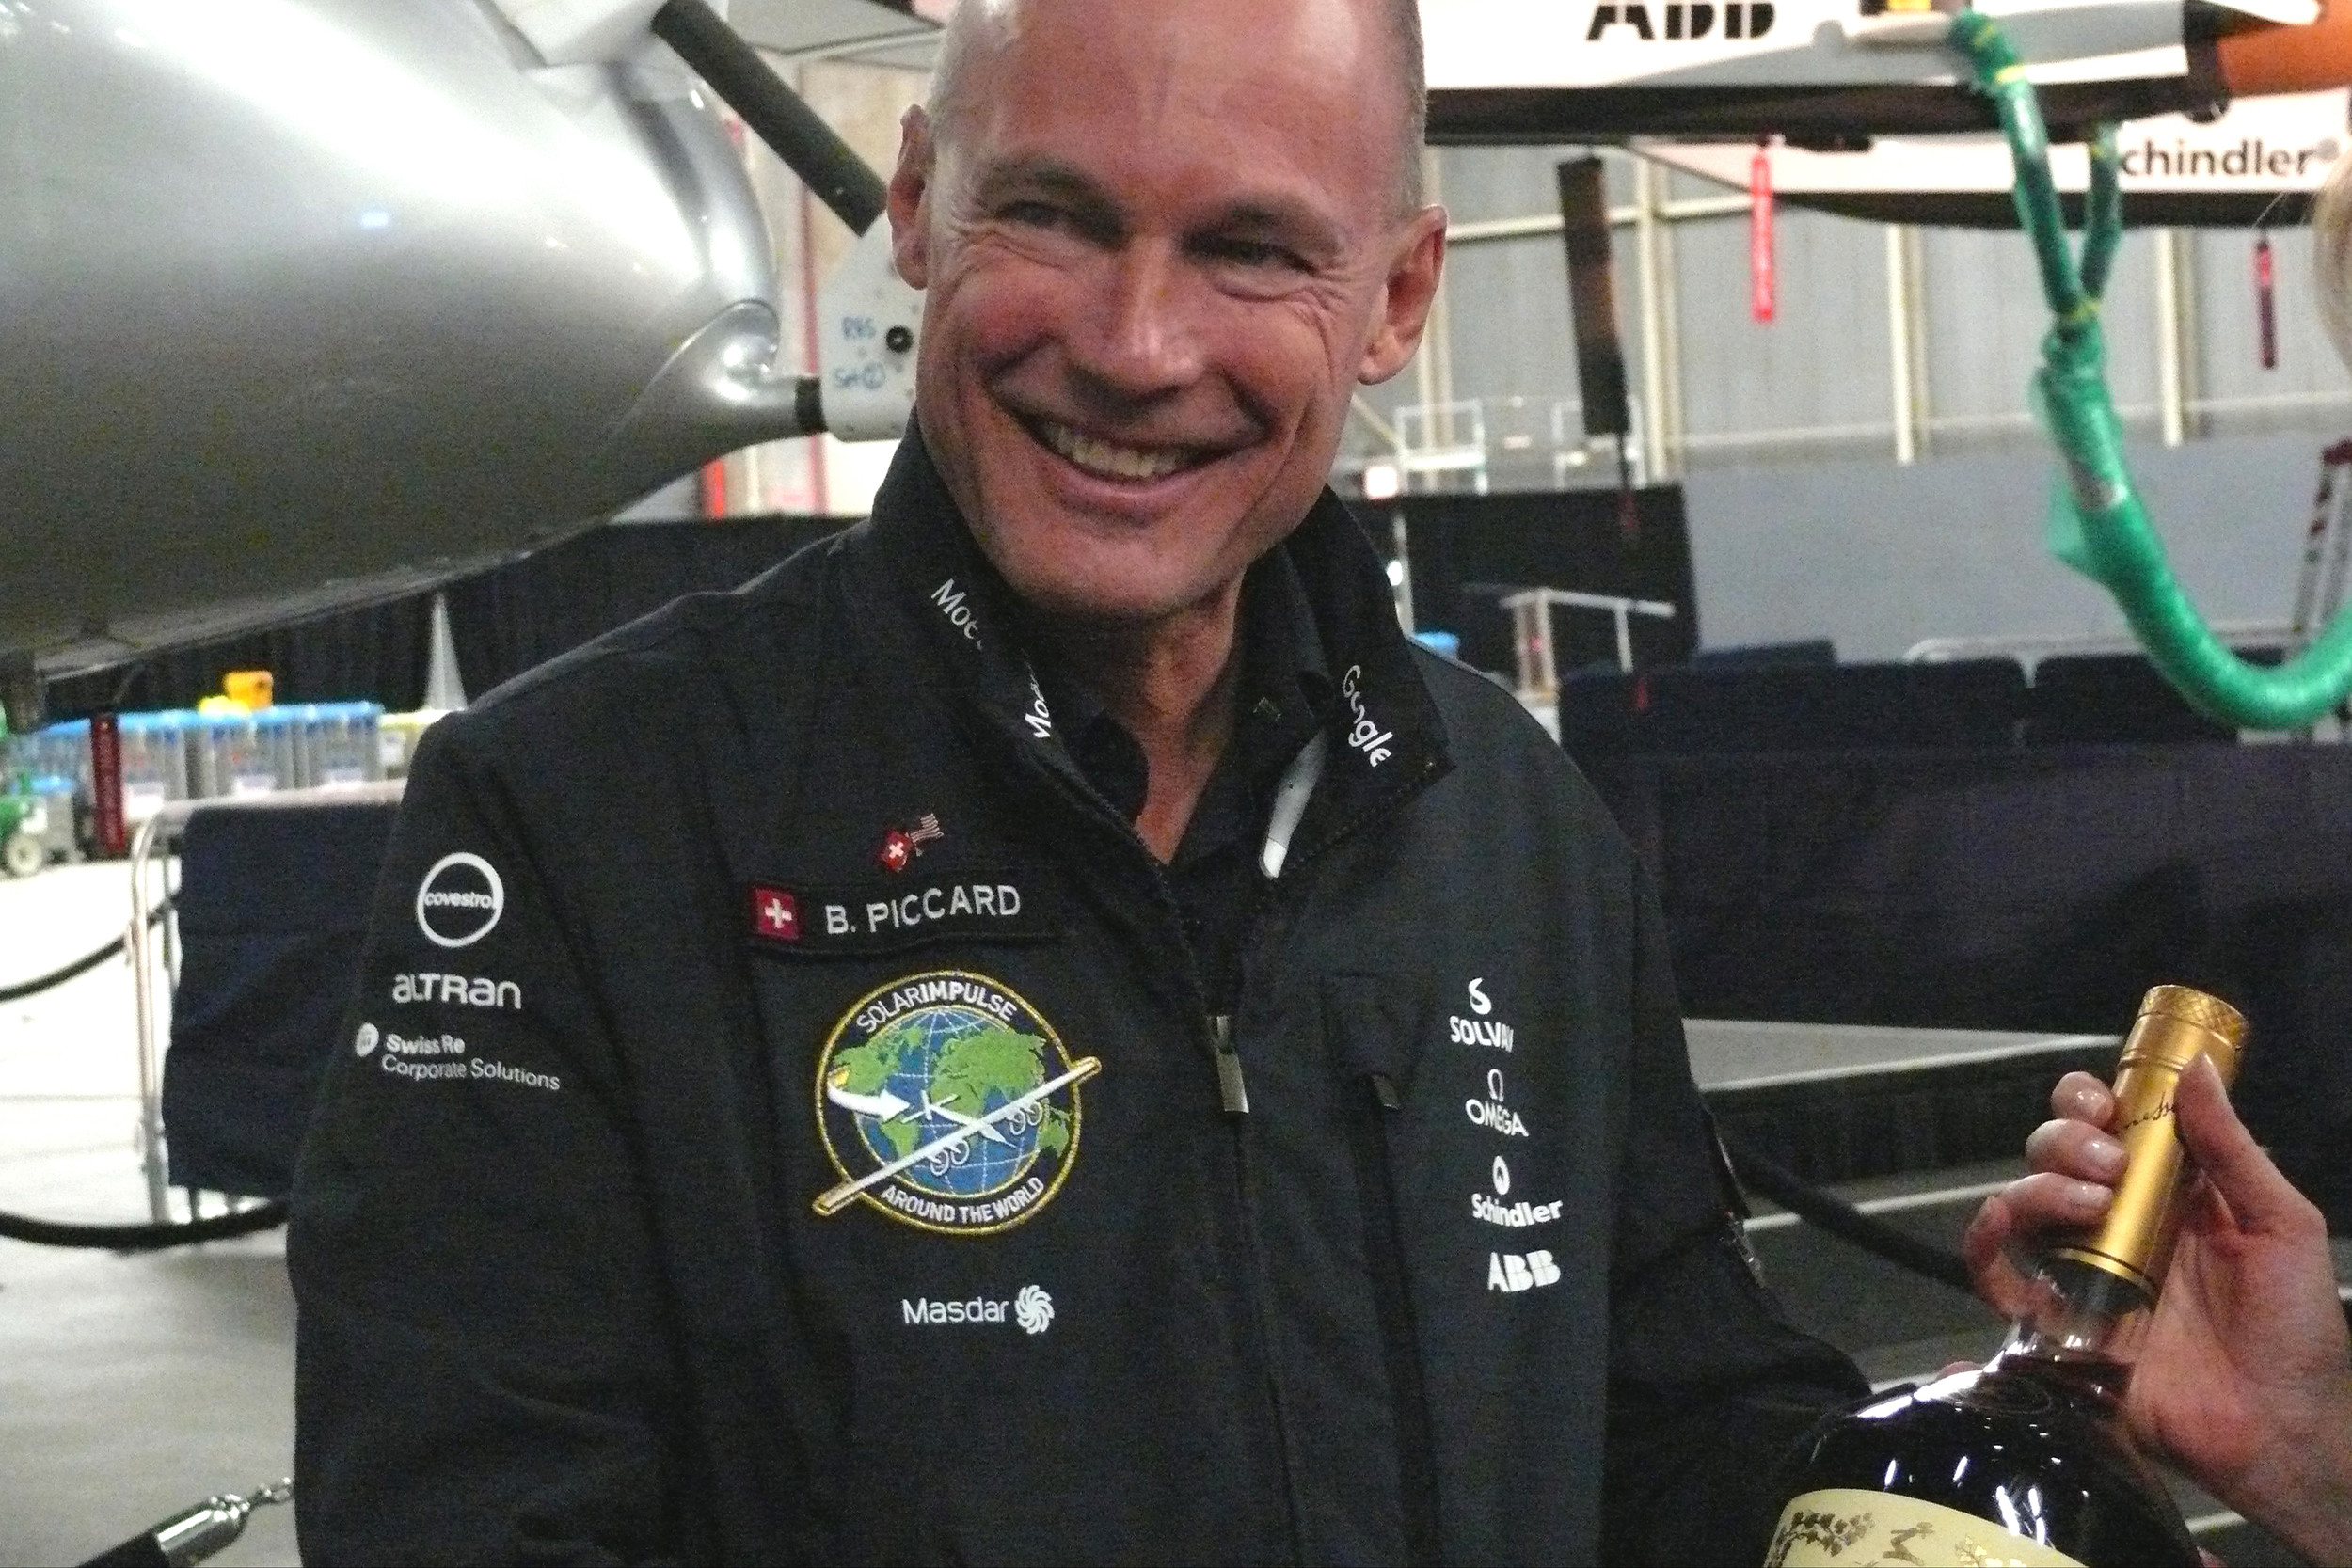 The sponsor Mott Hennessy offers pilot Bertrand Piccard a large bottle of champagne to celebrate his efforts and success with the Solar Impulse 2 mission.